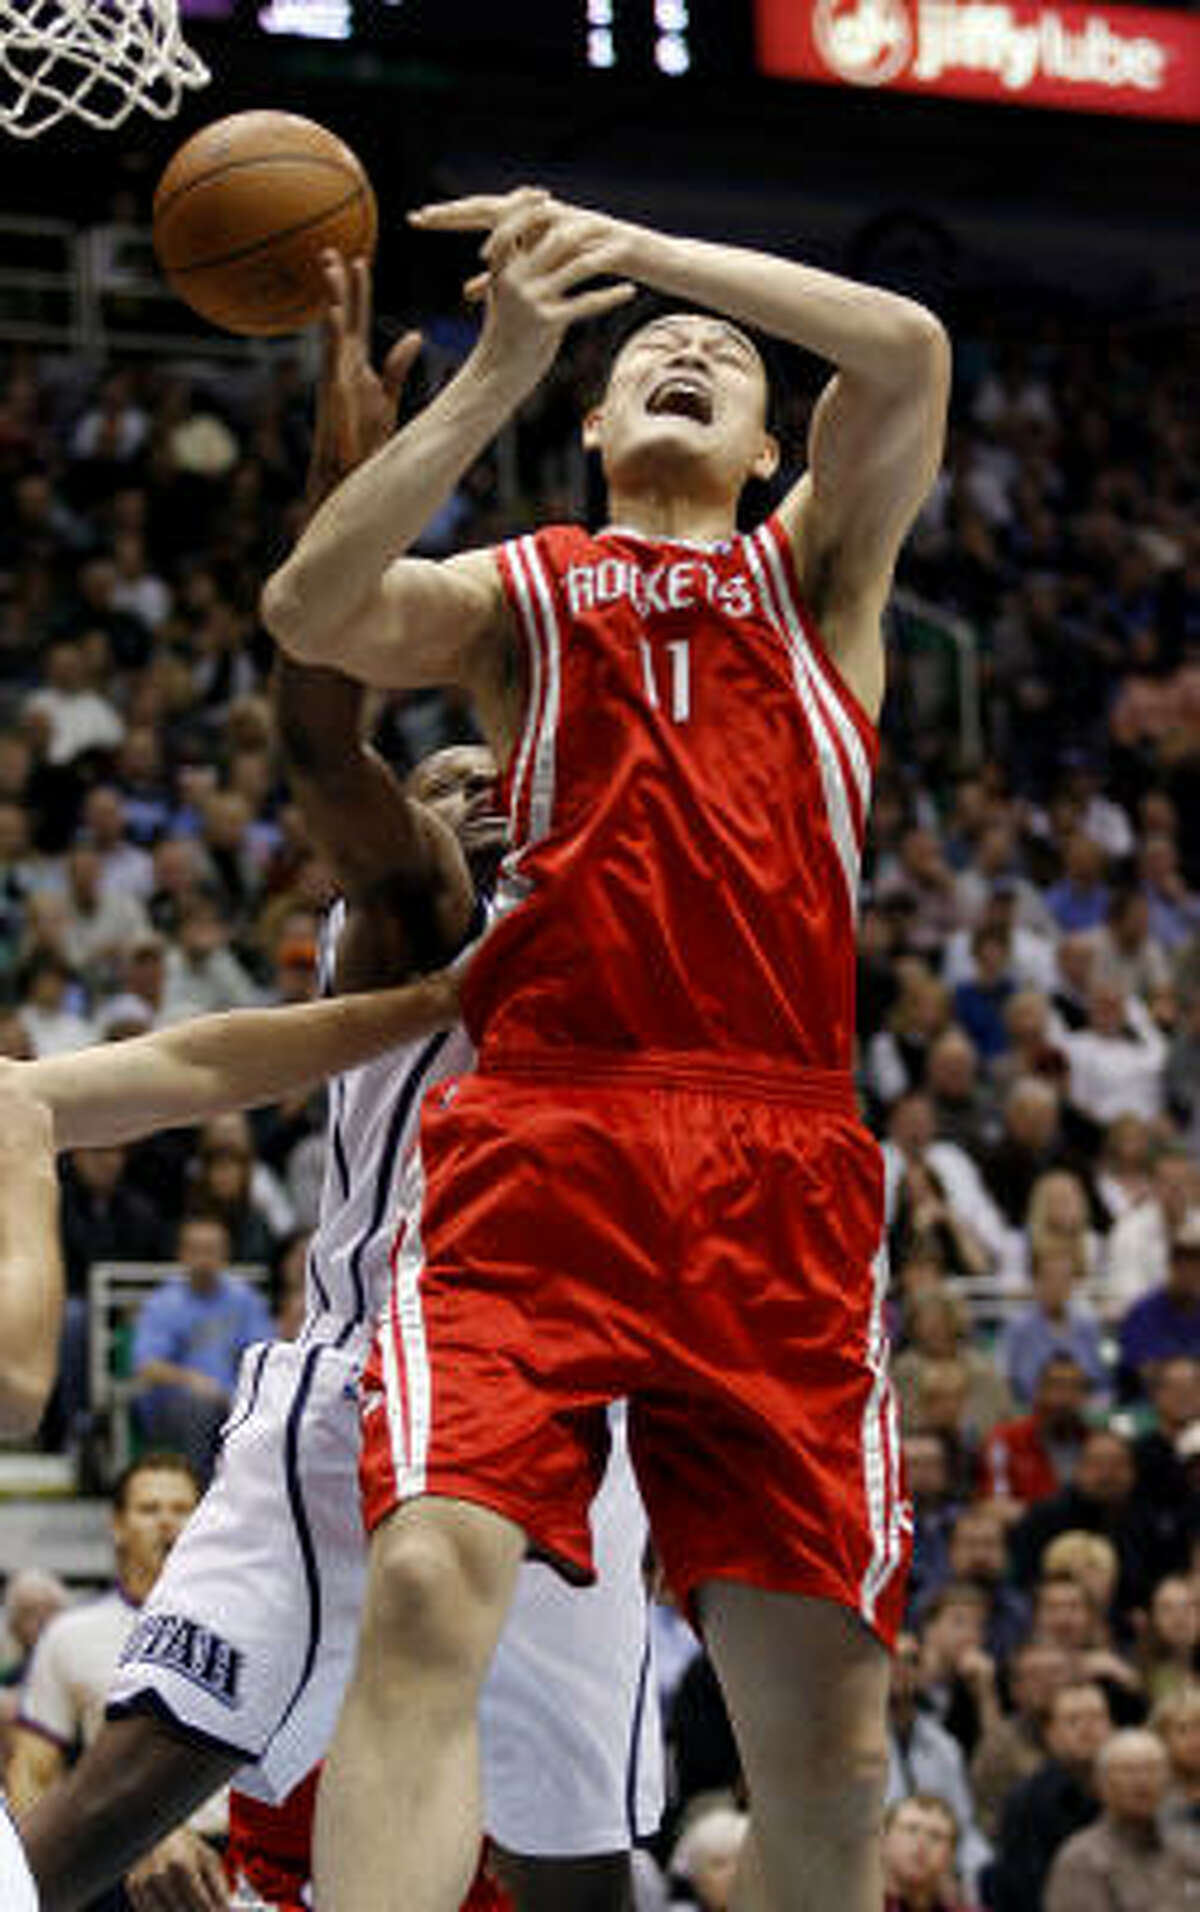 Houston Rockets center Yao Ming loses control of the ball under the basket while being guarded by Utah Jazz forward C.J. Miles.